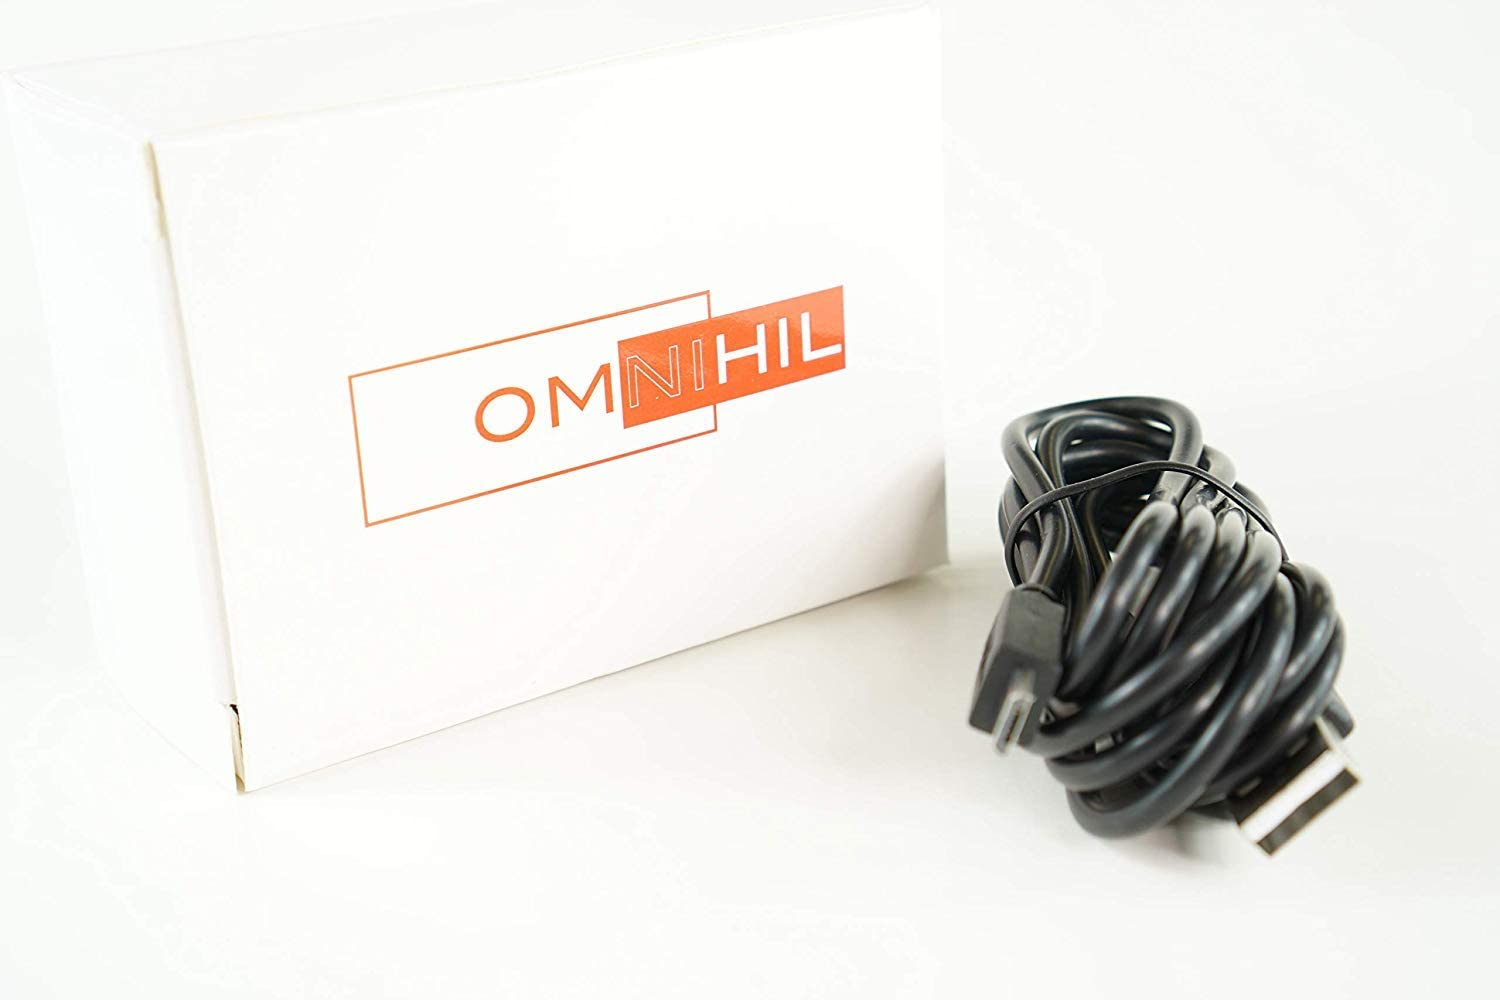 OMNIHIL 5 Feet Long High Speed USB 2.0 Cable Compatible with ITEKNIC BH004,BH003,BH001 TWS Bluetooth Earbuds